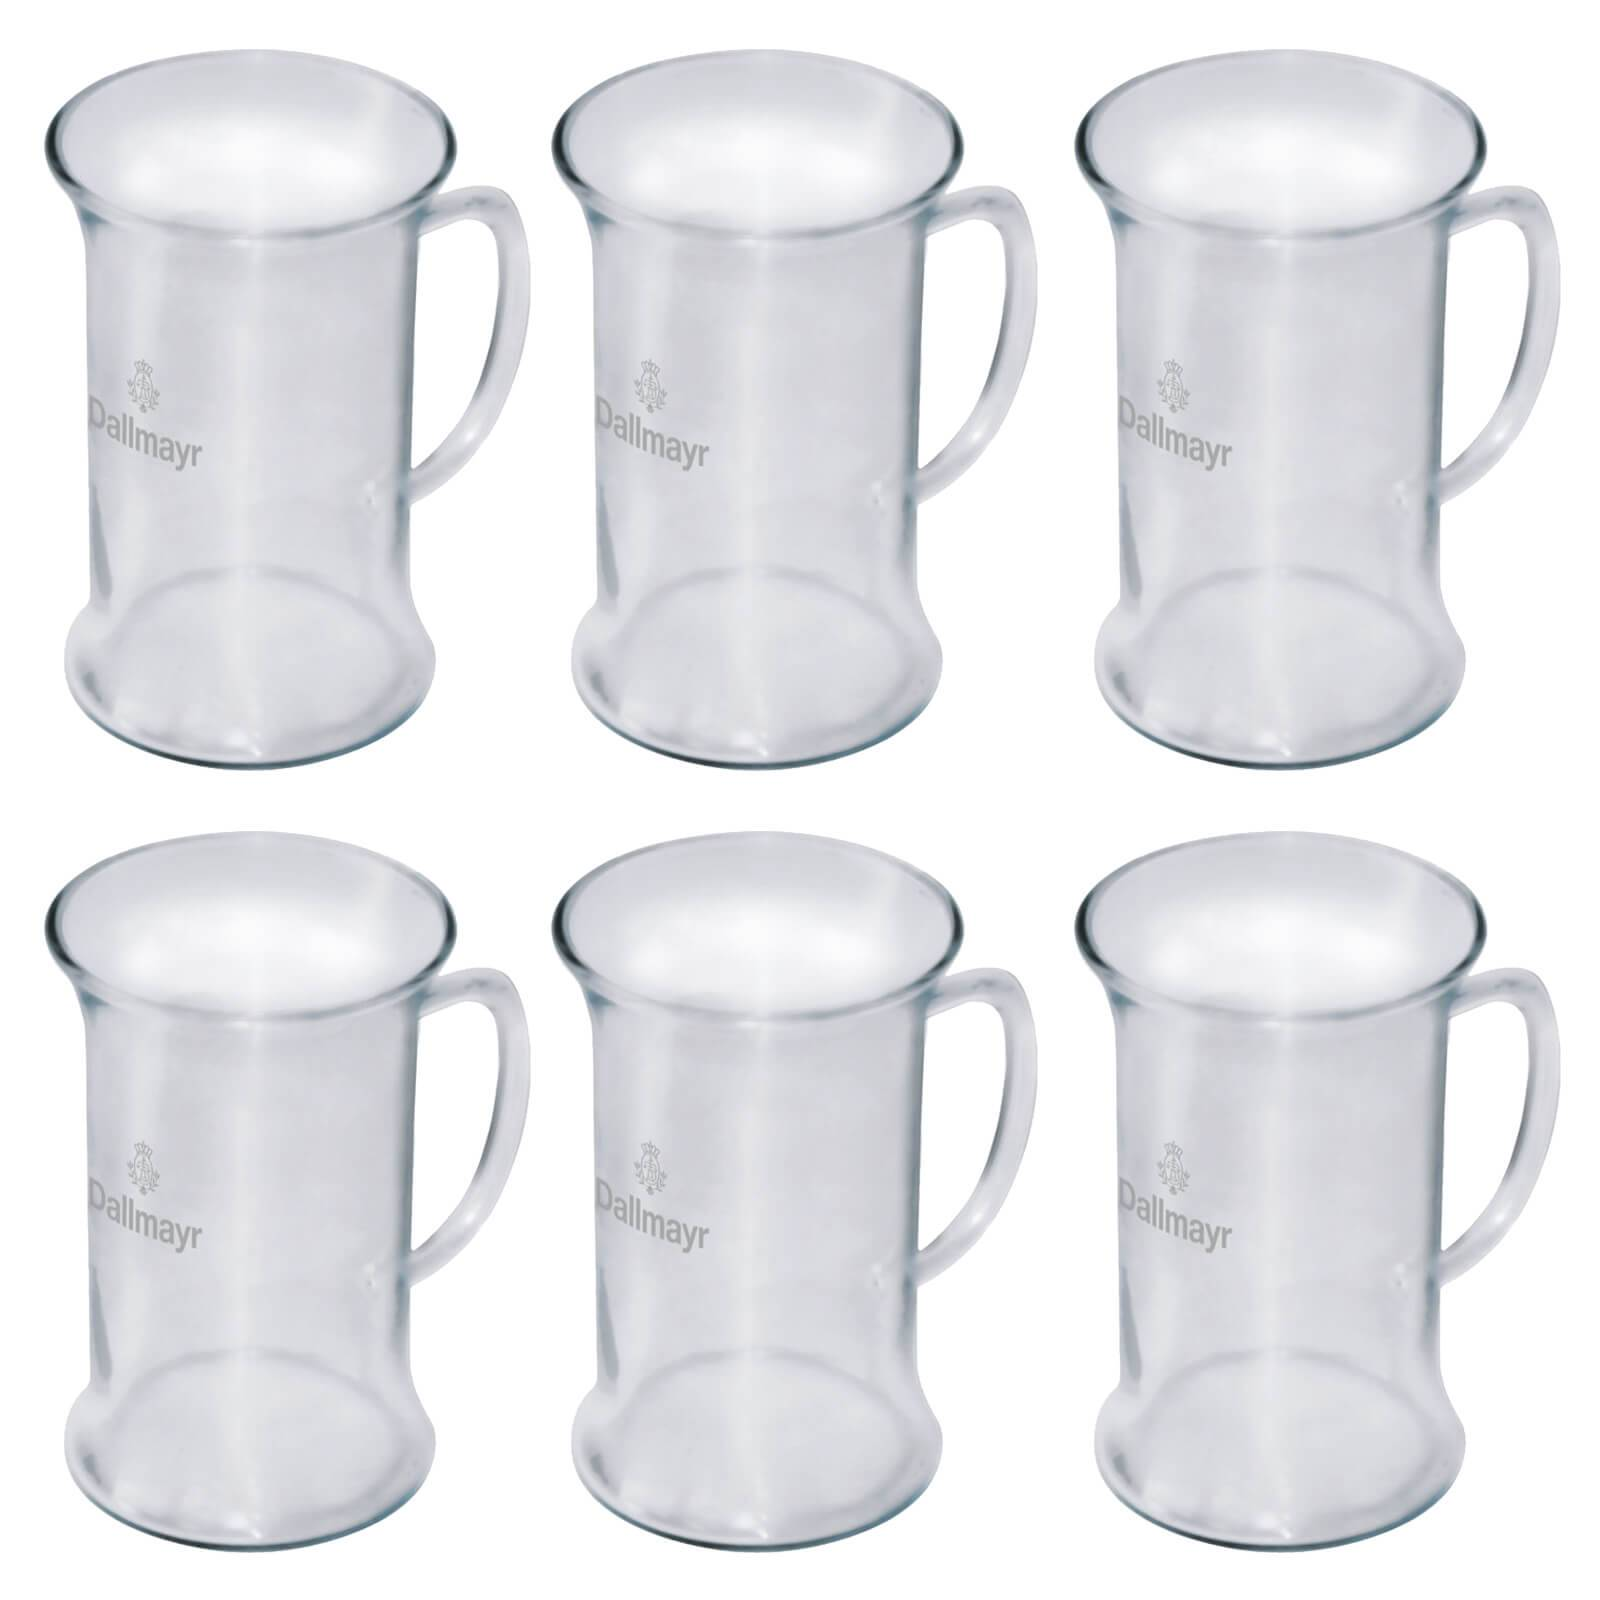 dallmayr teegl ser aufgu beutel 6 gl ser mit logo teeglas 250 ml tee glas 0 25 l ebay. Black Bedroom Furniture Sets. Home Design Ideas